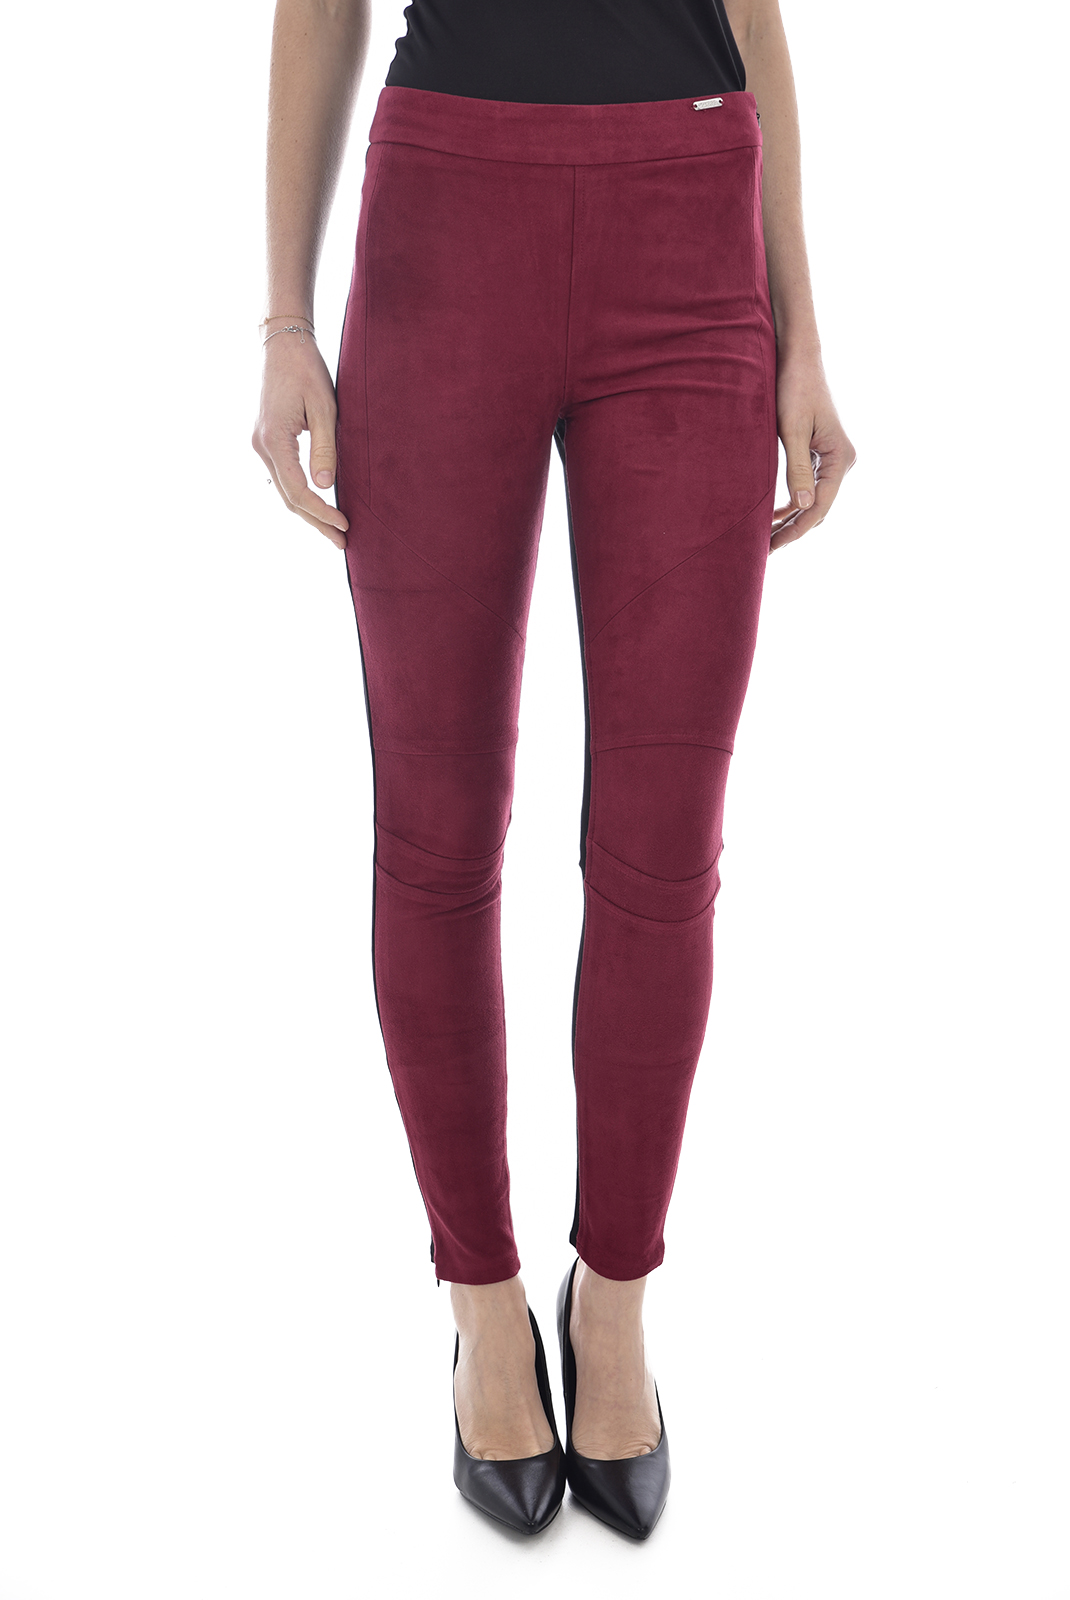 GUESS JEANS W81B02K6N80 - LEGGING ROUGE TAILLE HAUTE FEMME